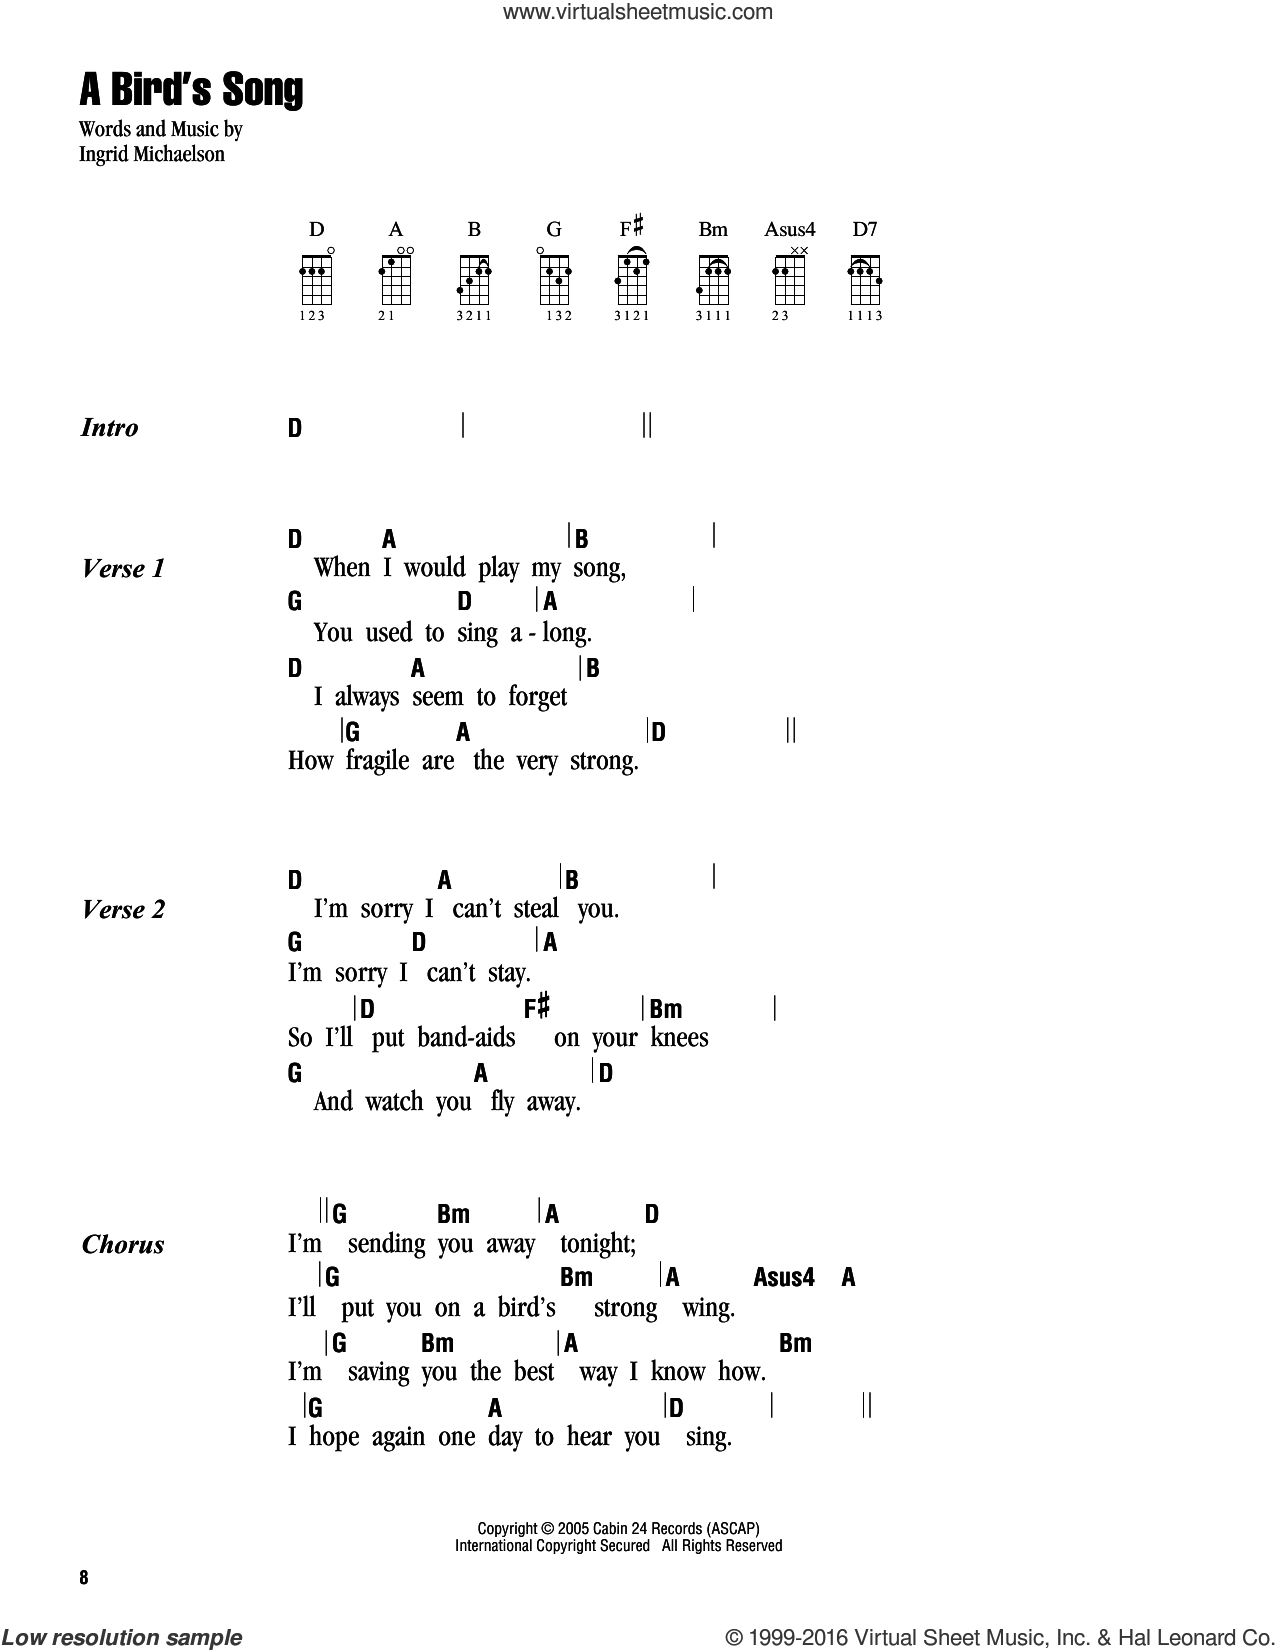 A Bird's Song sheet music for ukulele (chords) by Ingrid Michaelson, intermediate skill level